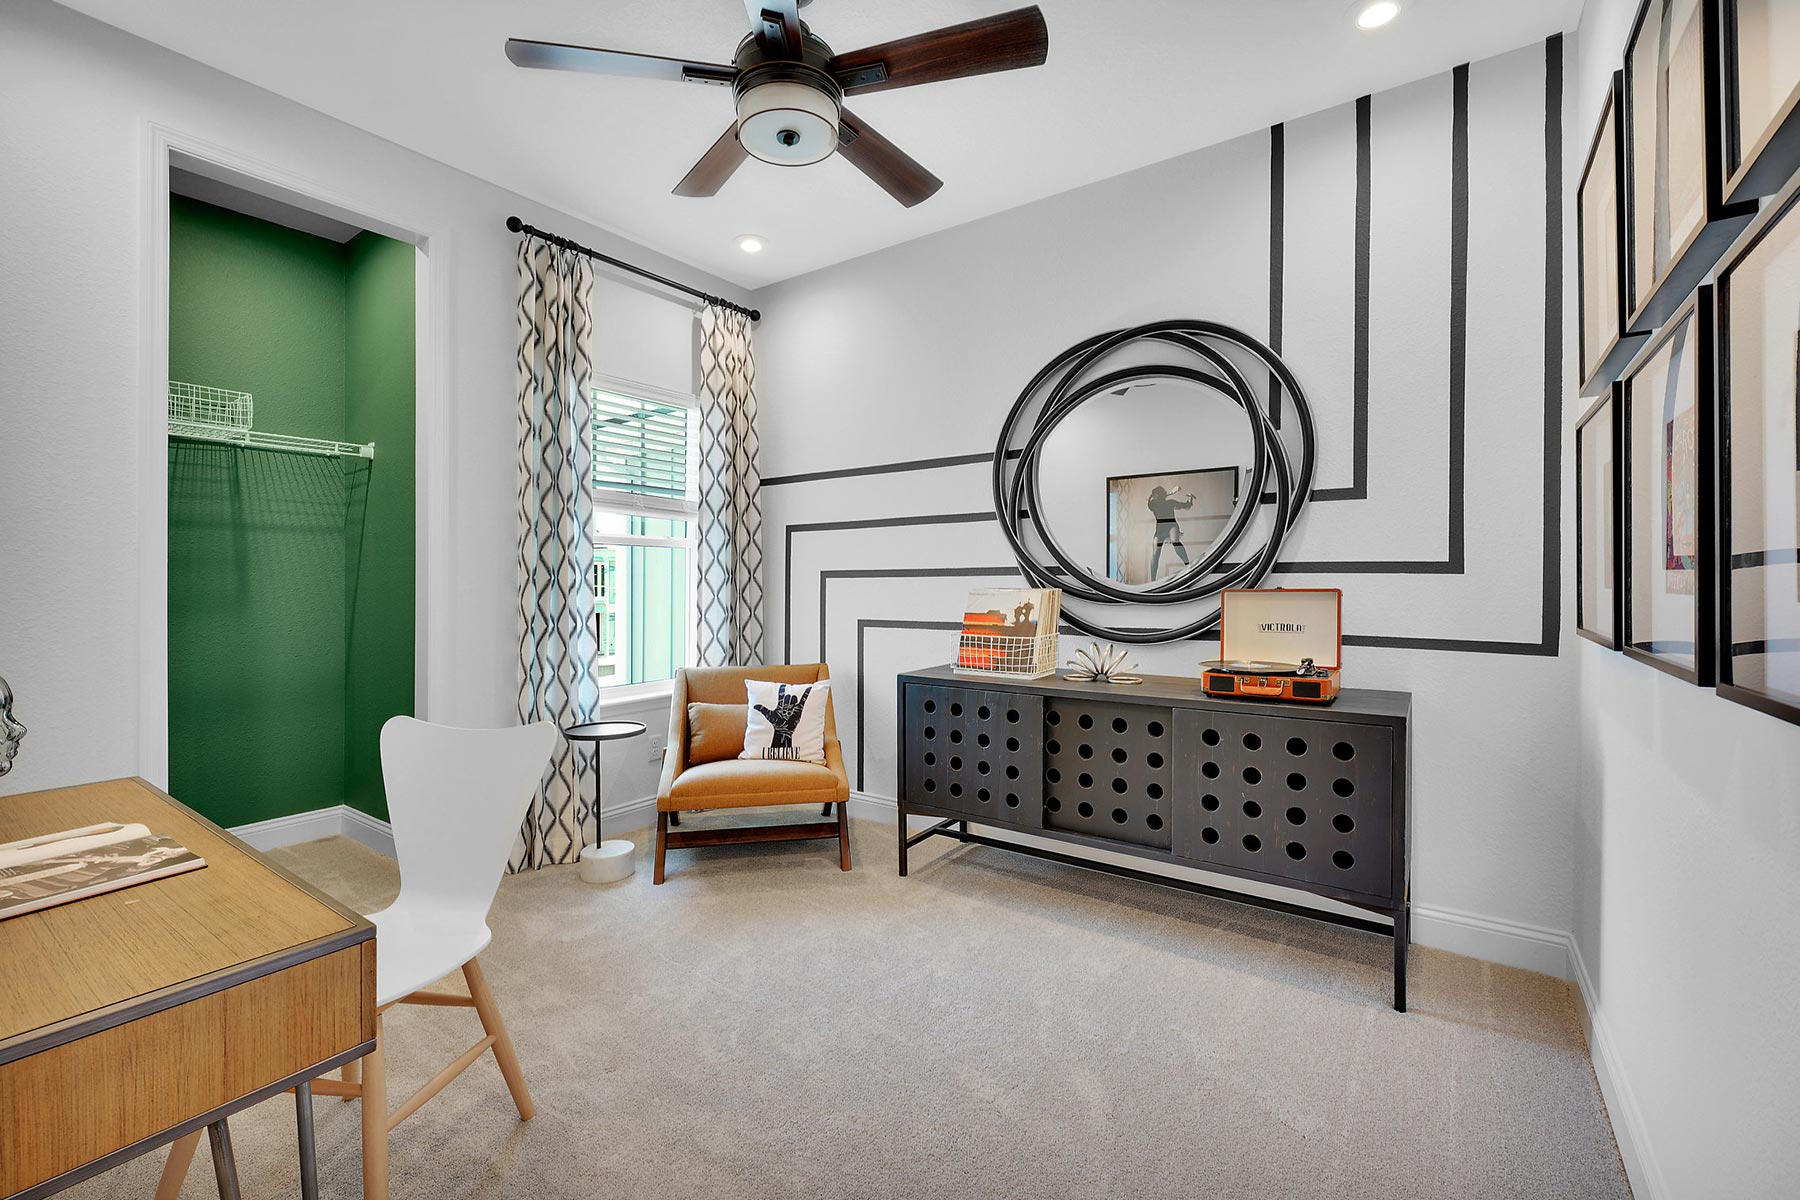 Pablo Cove Study Room in Jacksonville Florida by Mattamy Homes